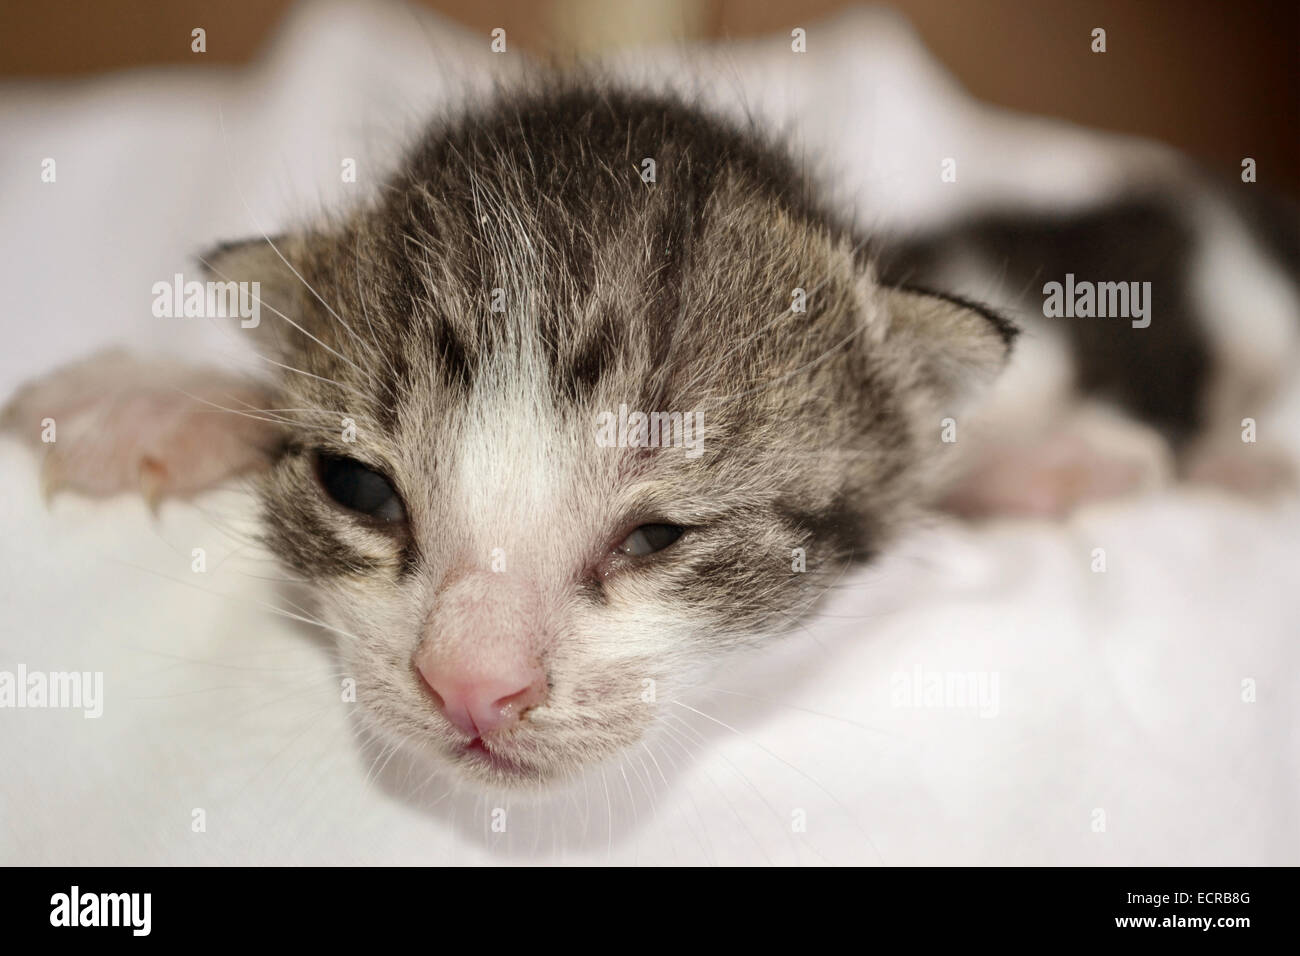 Newly born adorable kitten laying on bed Stock Royalty Free